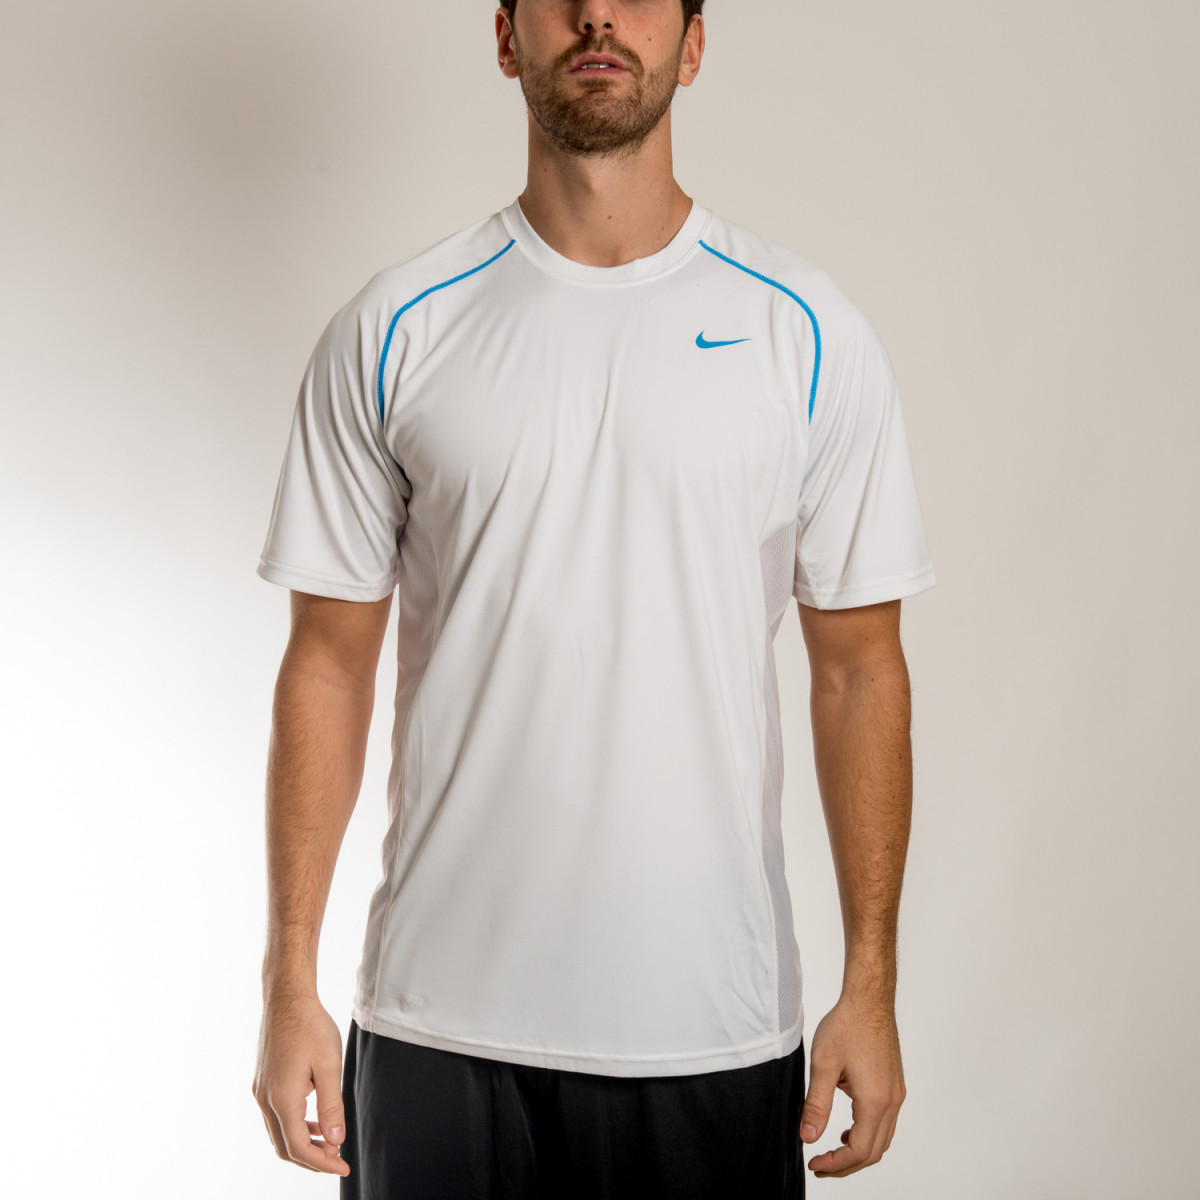 REMERA NIKE SPEED LEGEND SS TOP 2.0